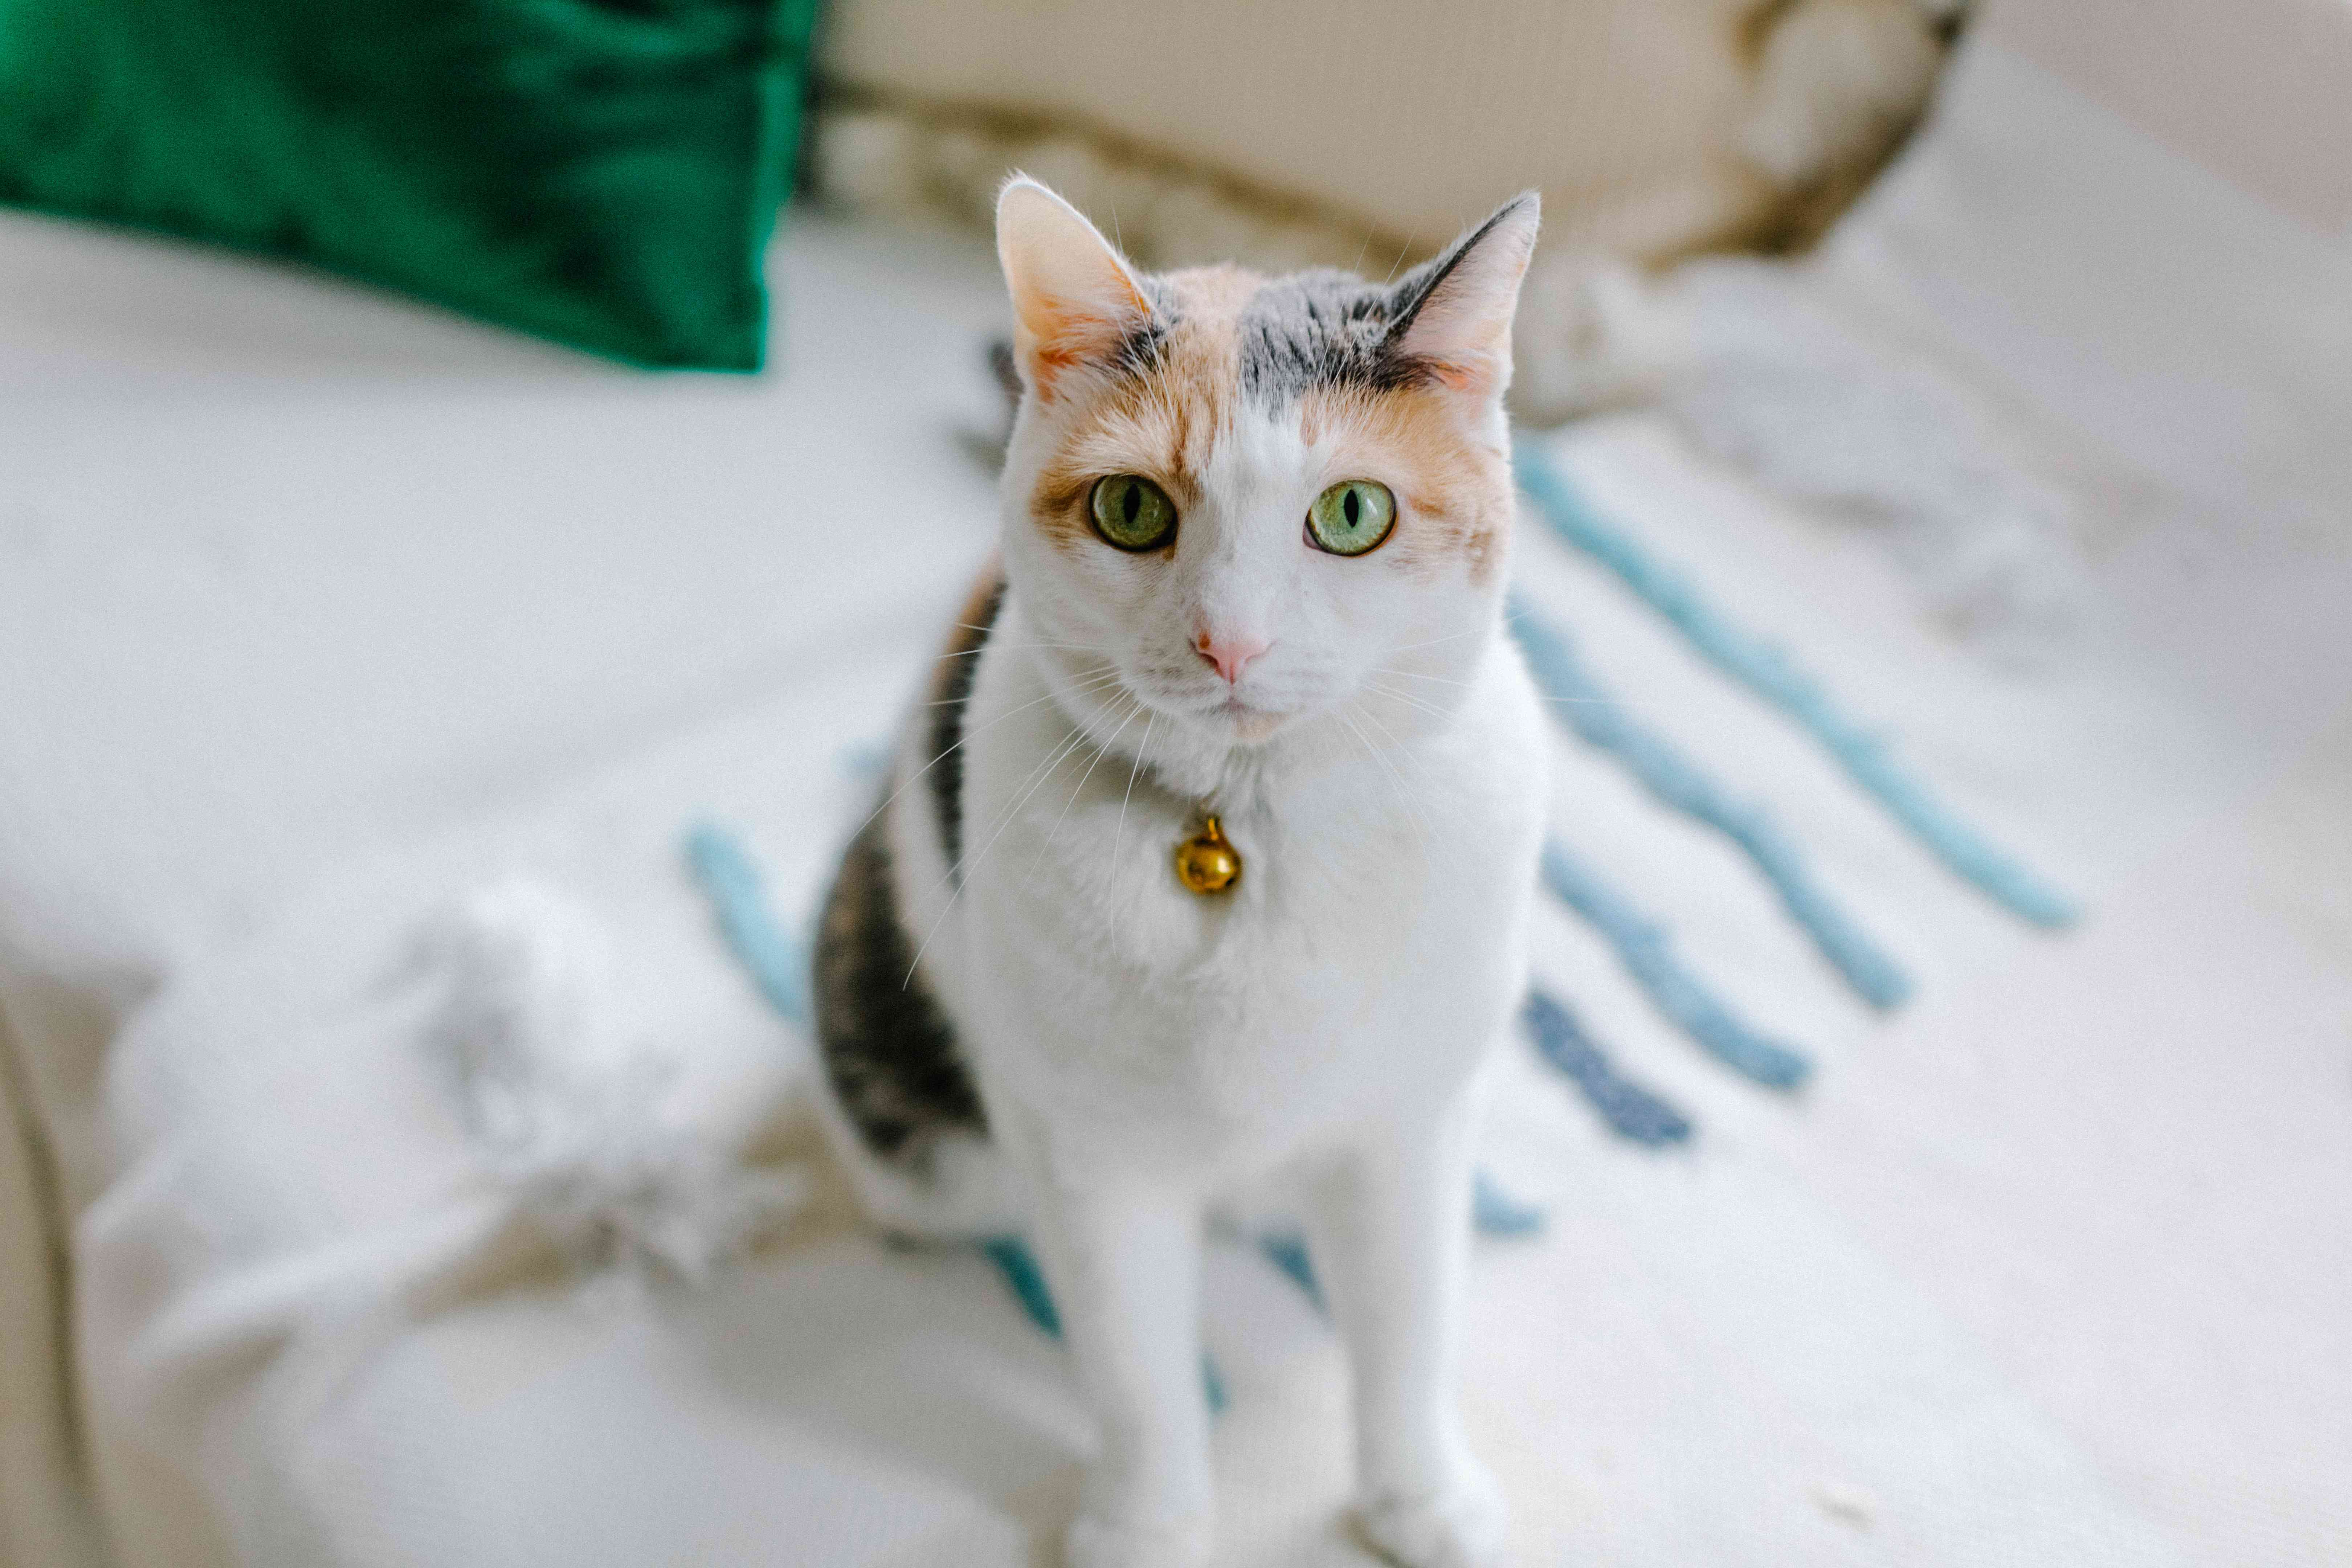 calico kitty cat sits on white couch with striped blanket and stares at camera person